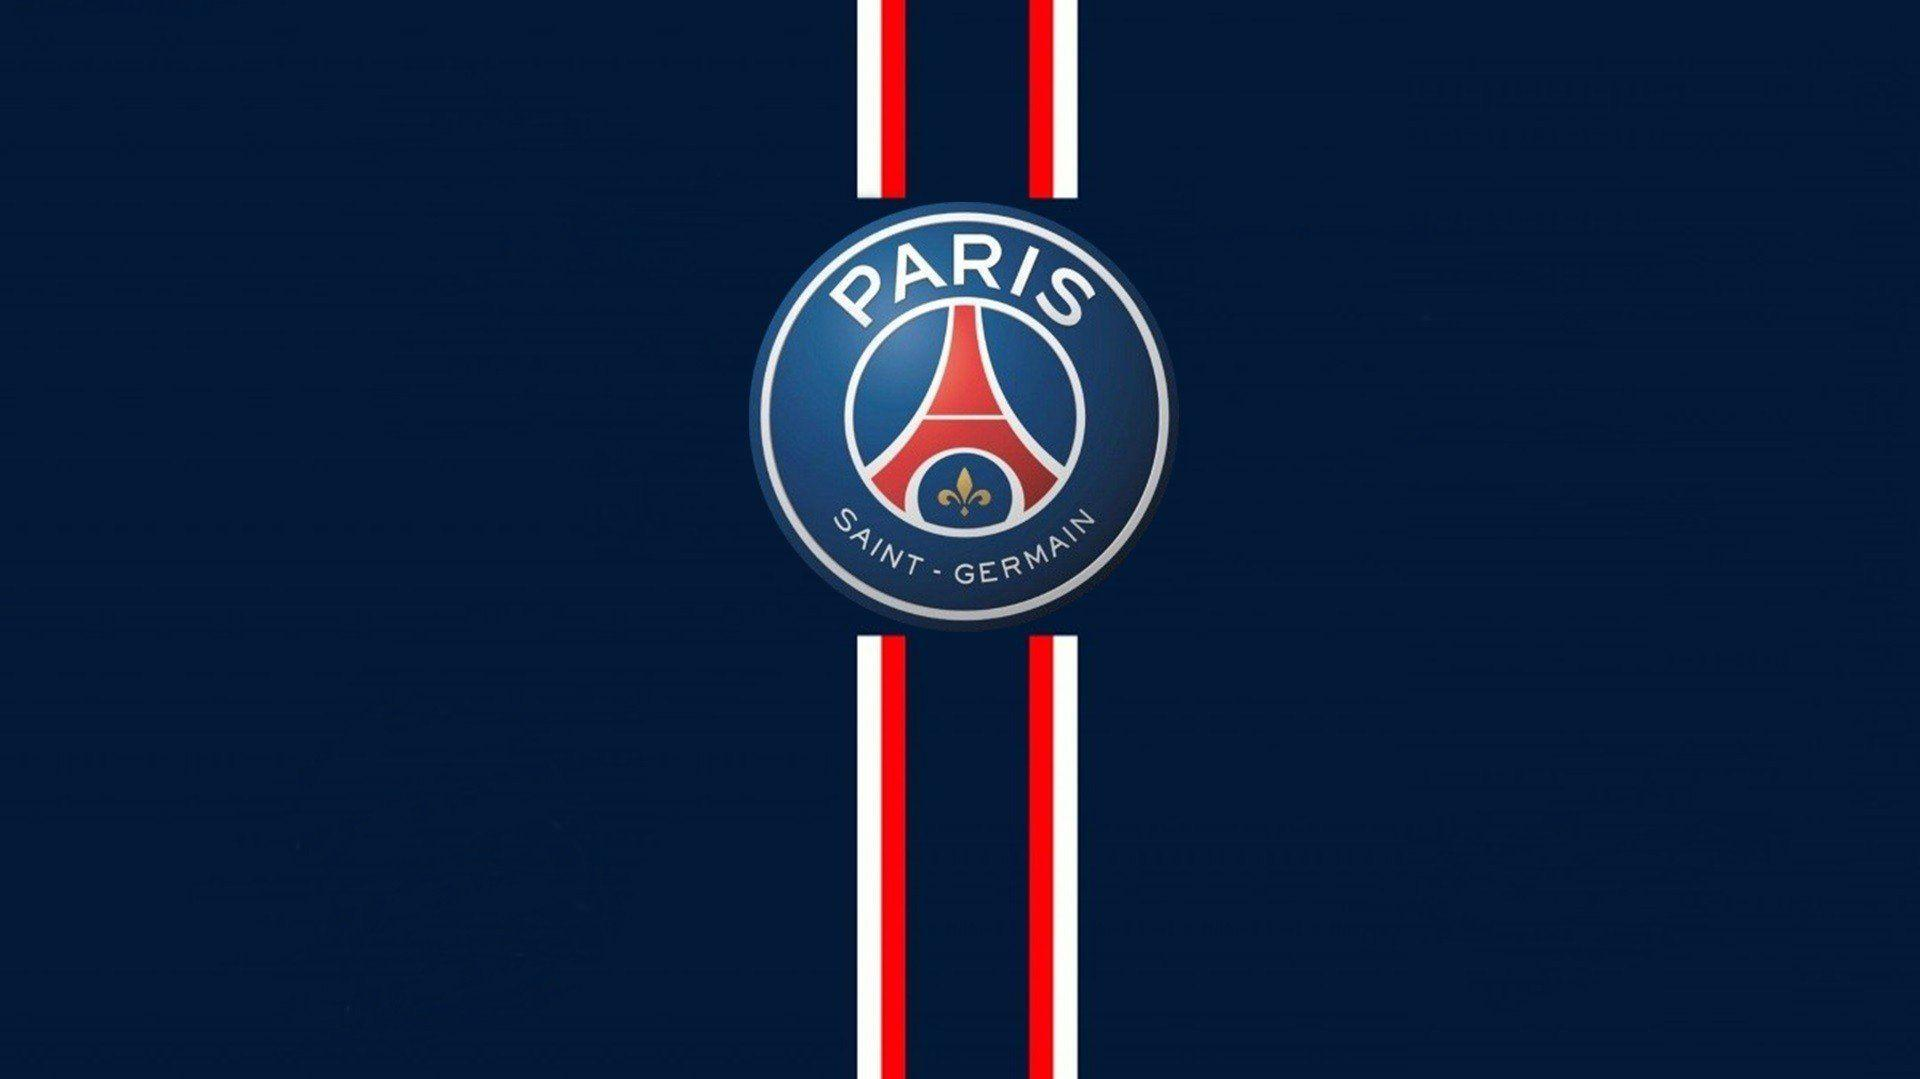 1920x1079 - Paris Saint-Germain F.C. Wallpapers 2